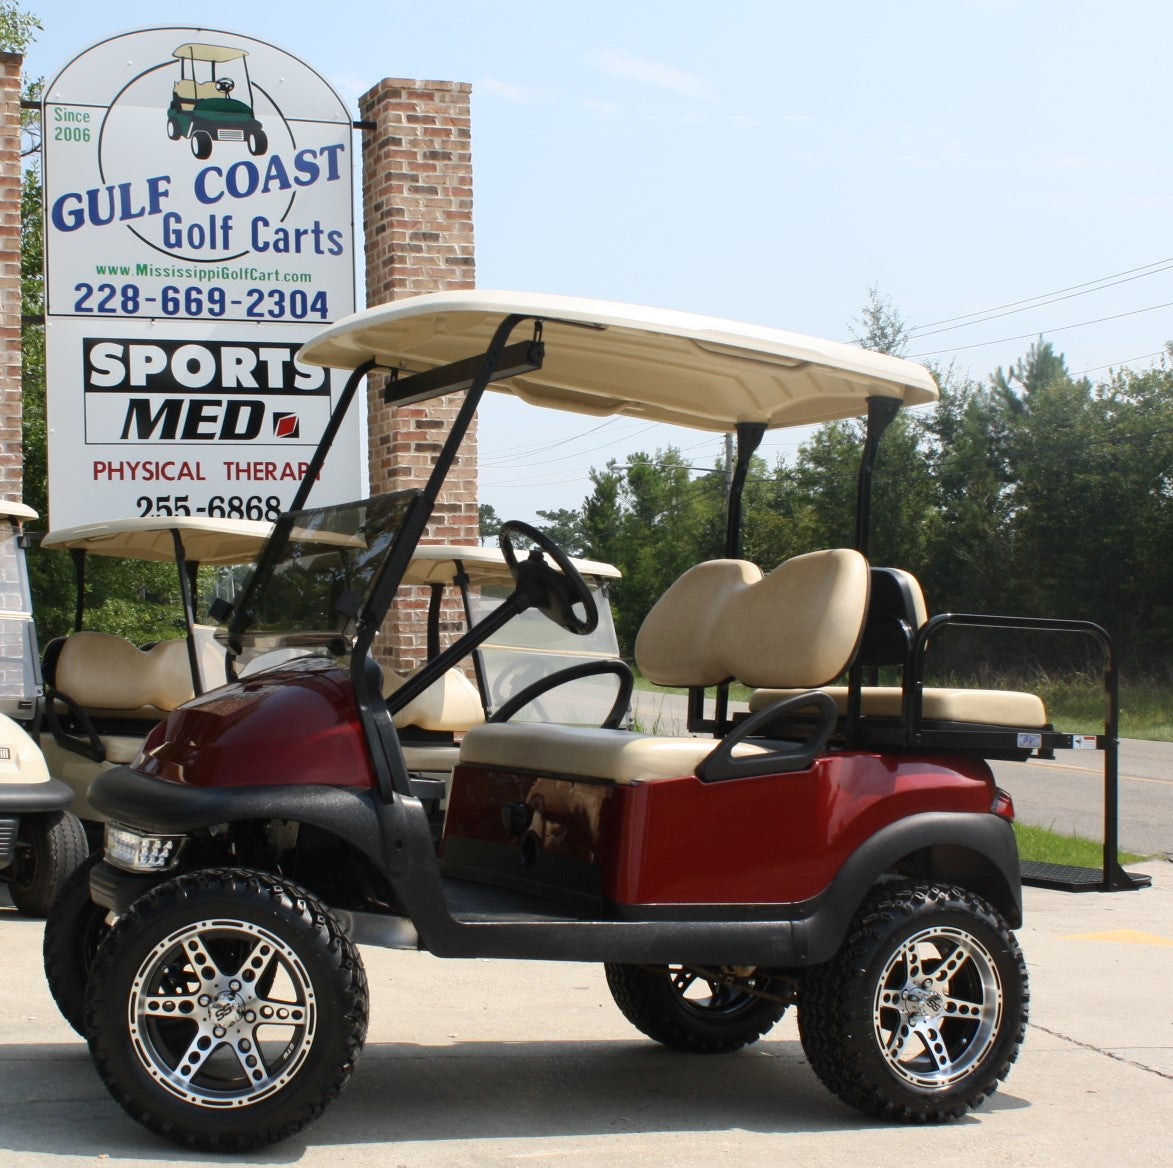 Gulf Coast Golf Carts In Stock Inventory Used Golf Carts For Sale